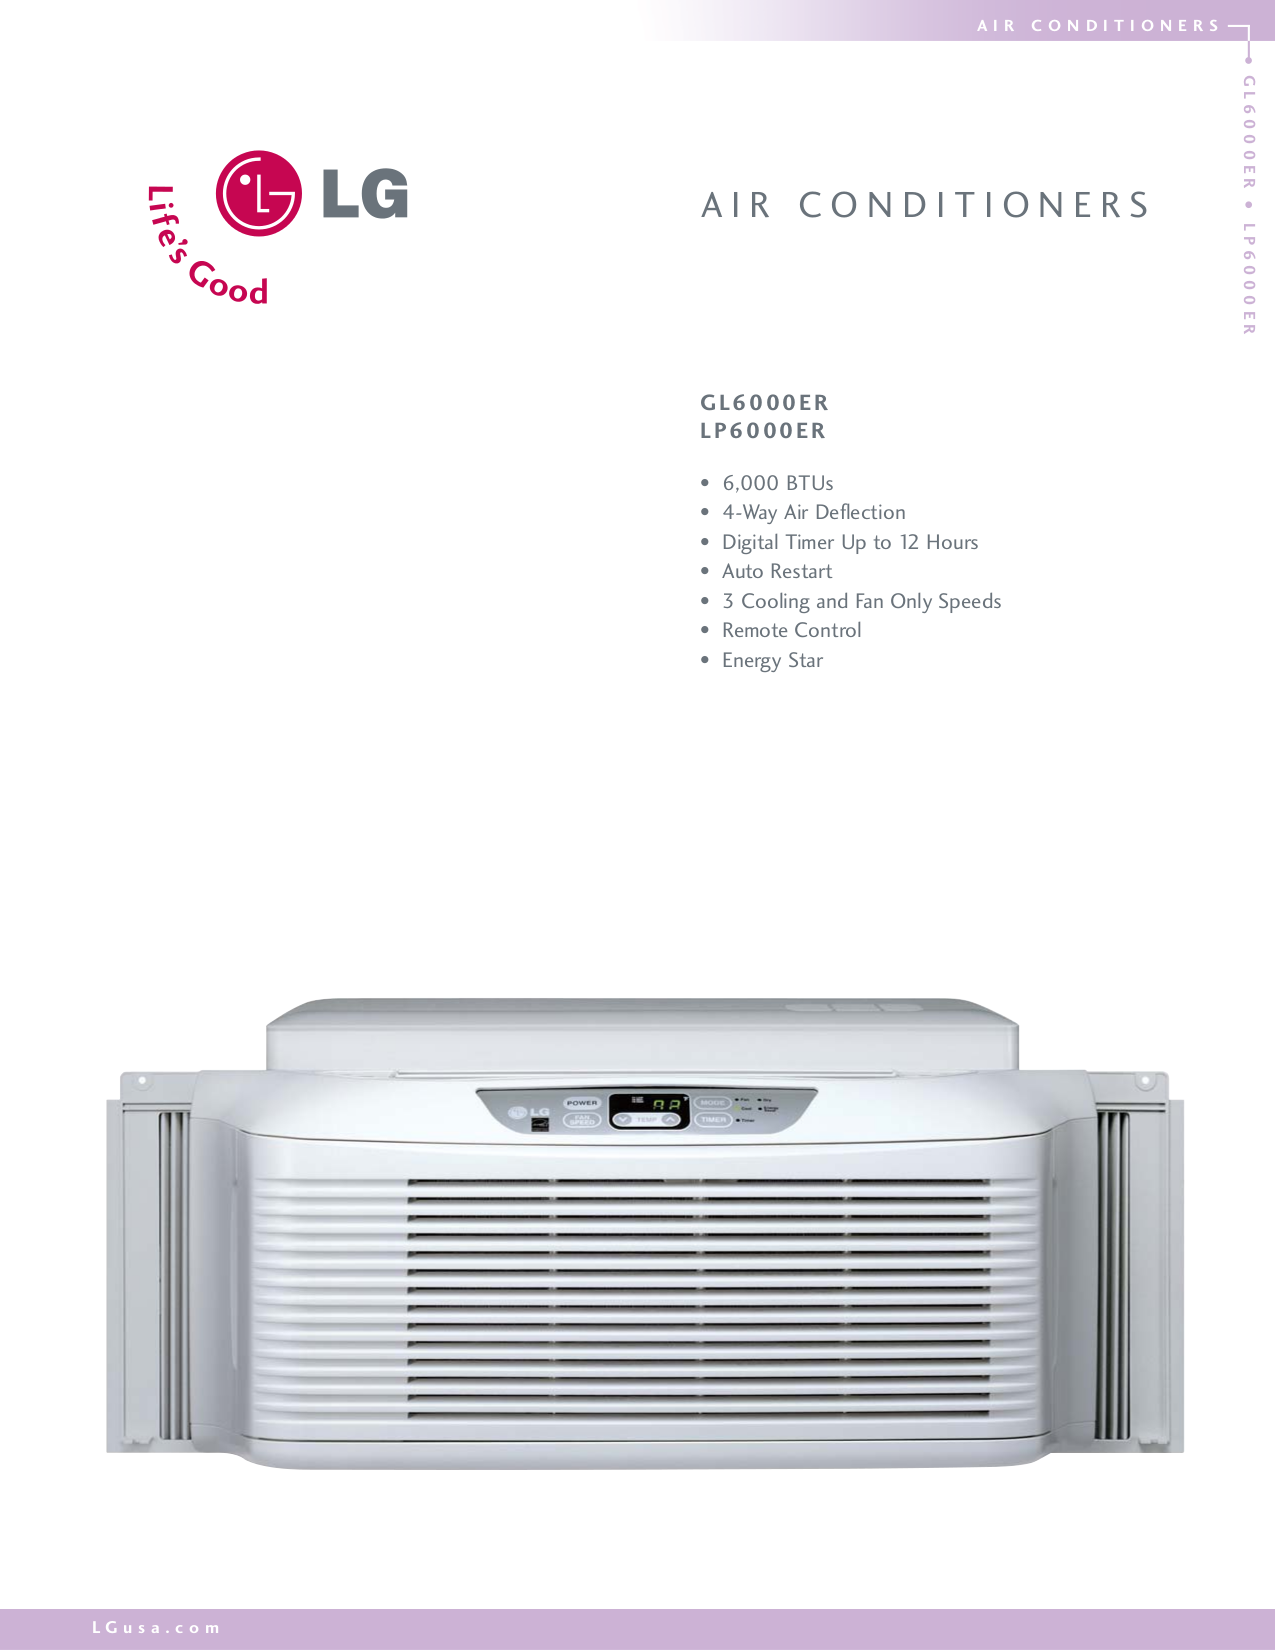 Download free pdf for LG GL6000ER Air Conditioner manual